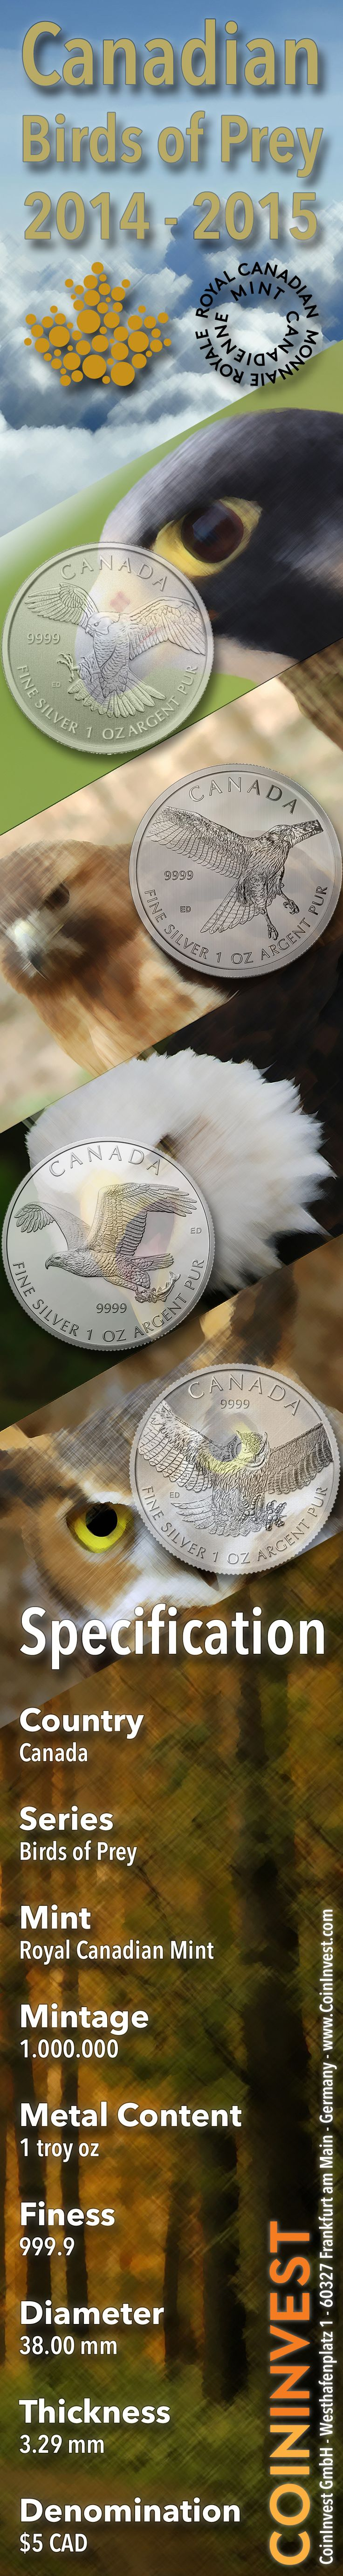 Canadian Birds of Prey 2014-2015 — Silbermünzen Kanada — Royal Canadian Mint (Infografik)